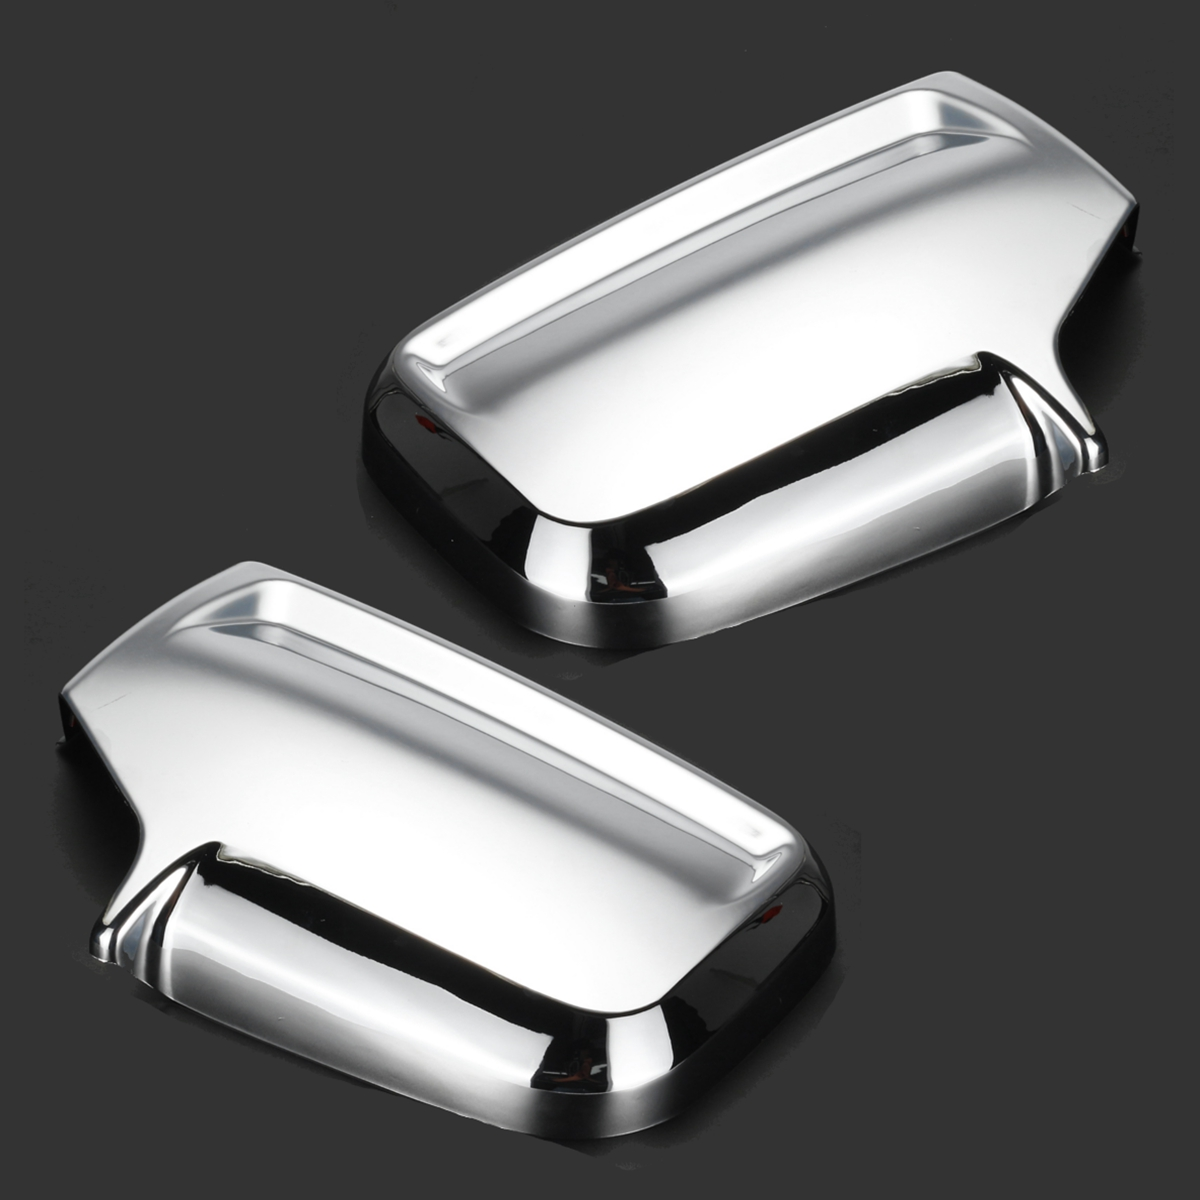 2PCS Rearview Mirror Covers For Mercedes Sprinter 2006 2007 2008 2009 2010 2011 2012 2013 2014 2015 2016 2017 2018 Gloss Chrome